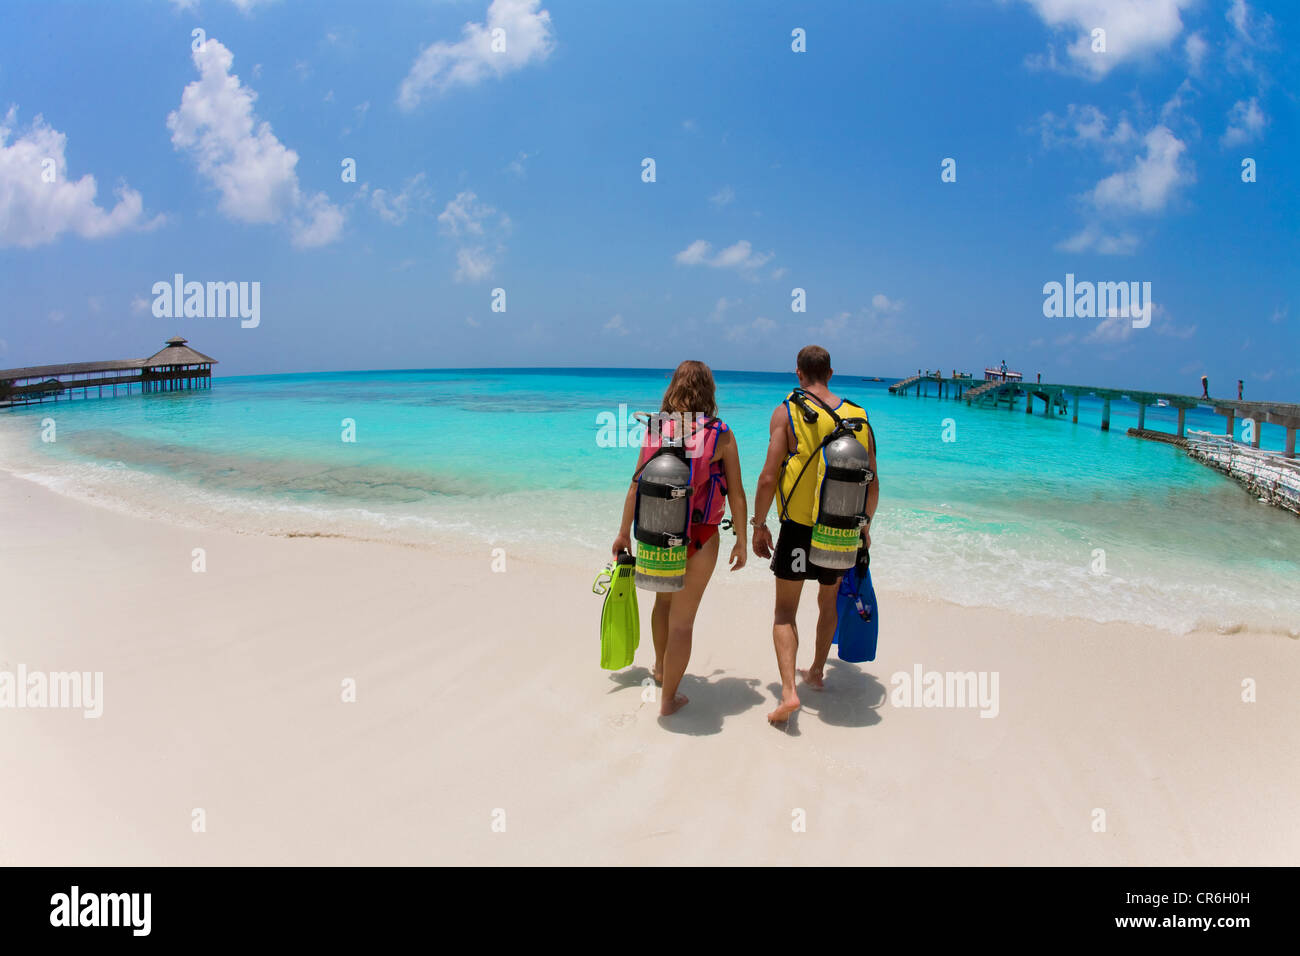 Couple, scuba divers on the beach of Reethi Beach Island, Baa Atoll, Maldives, Indian Ocean, Asia - Stock Image